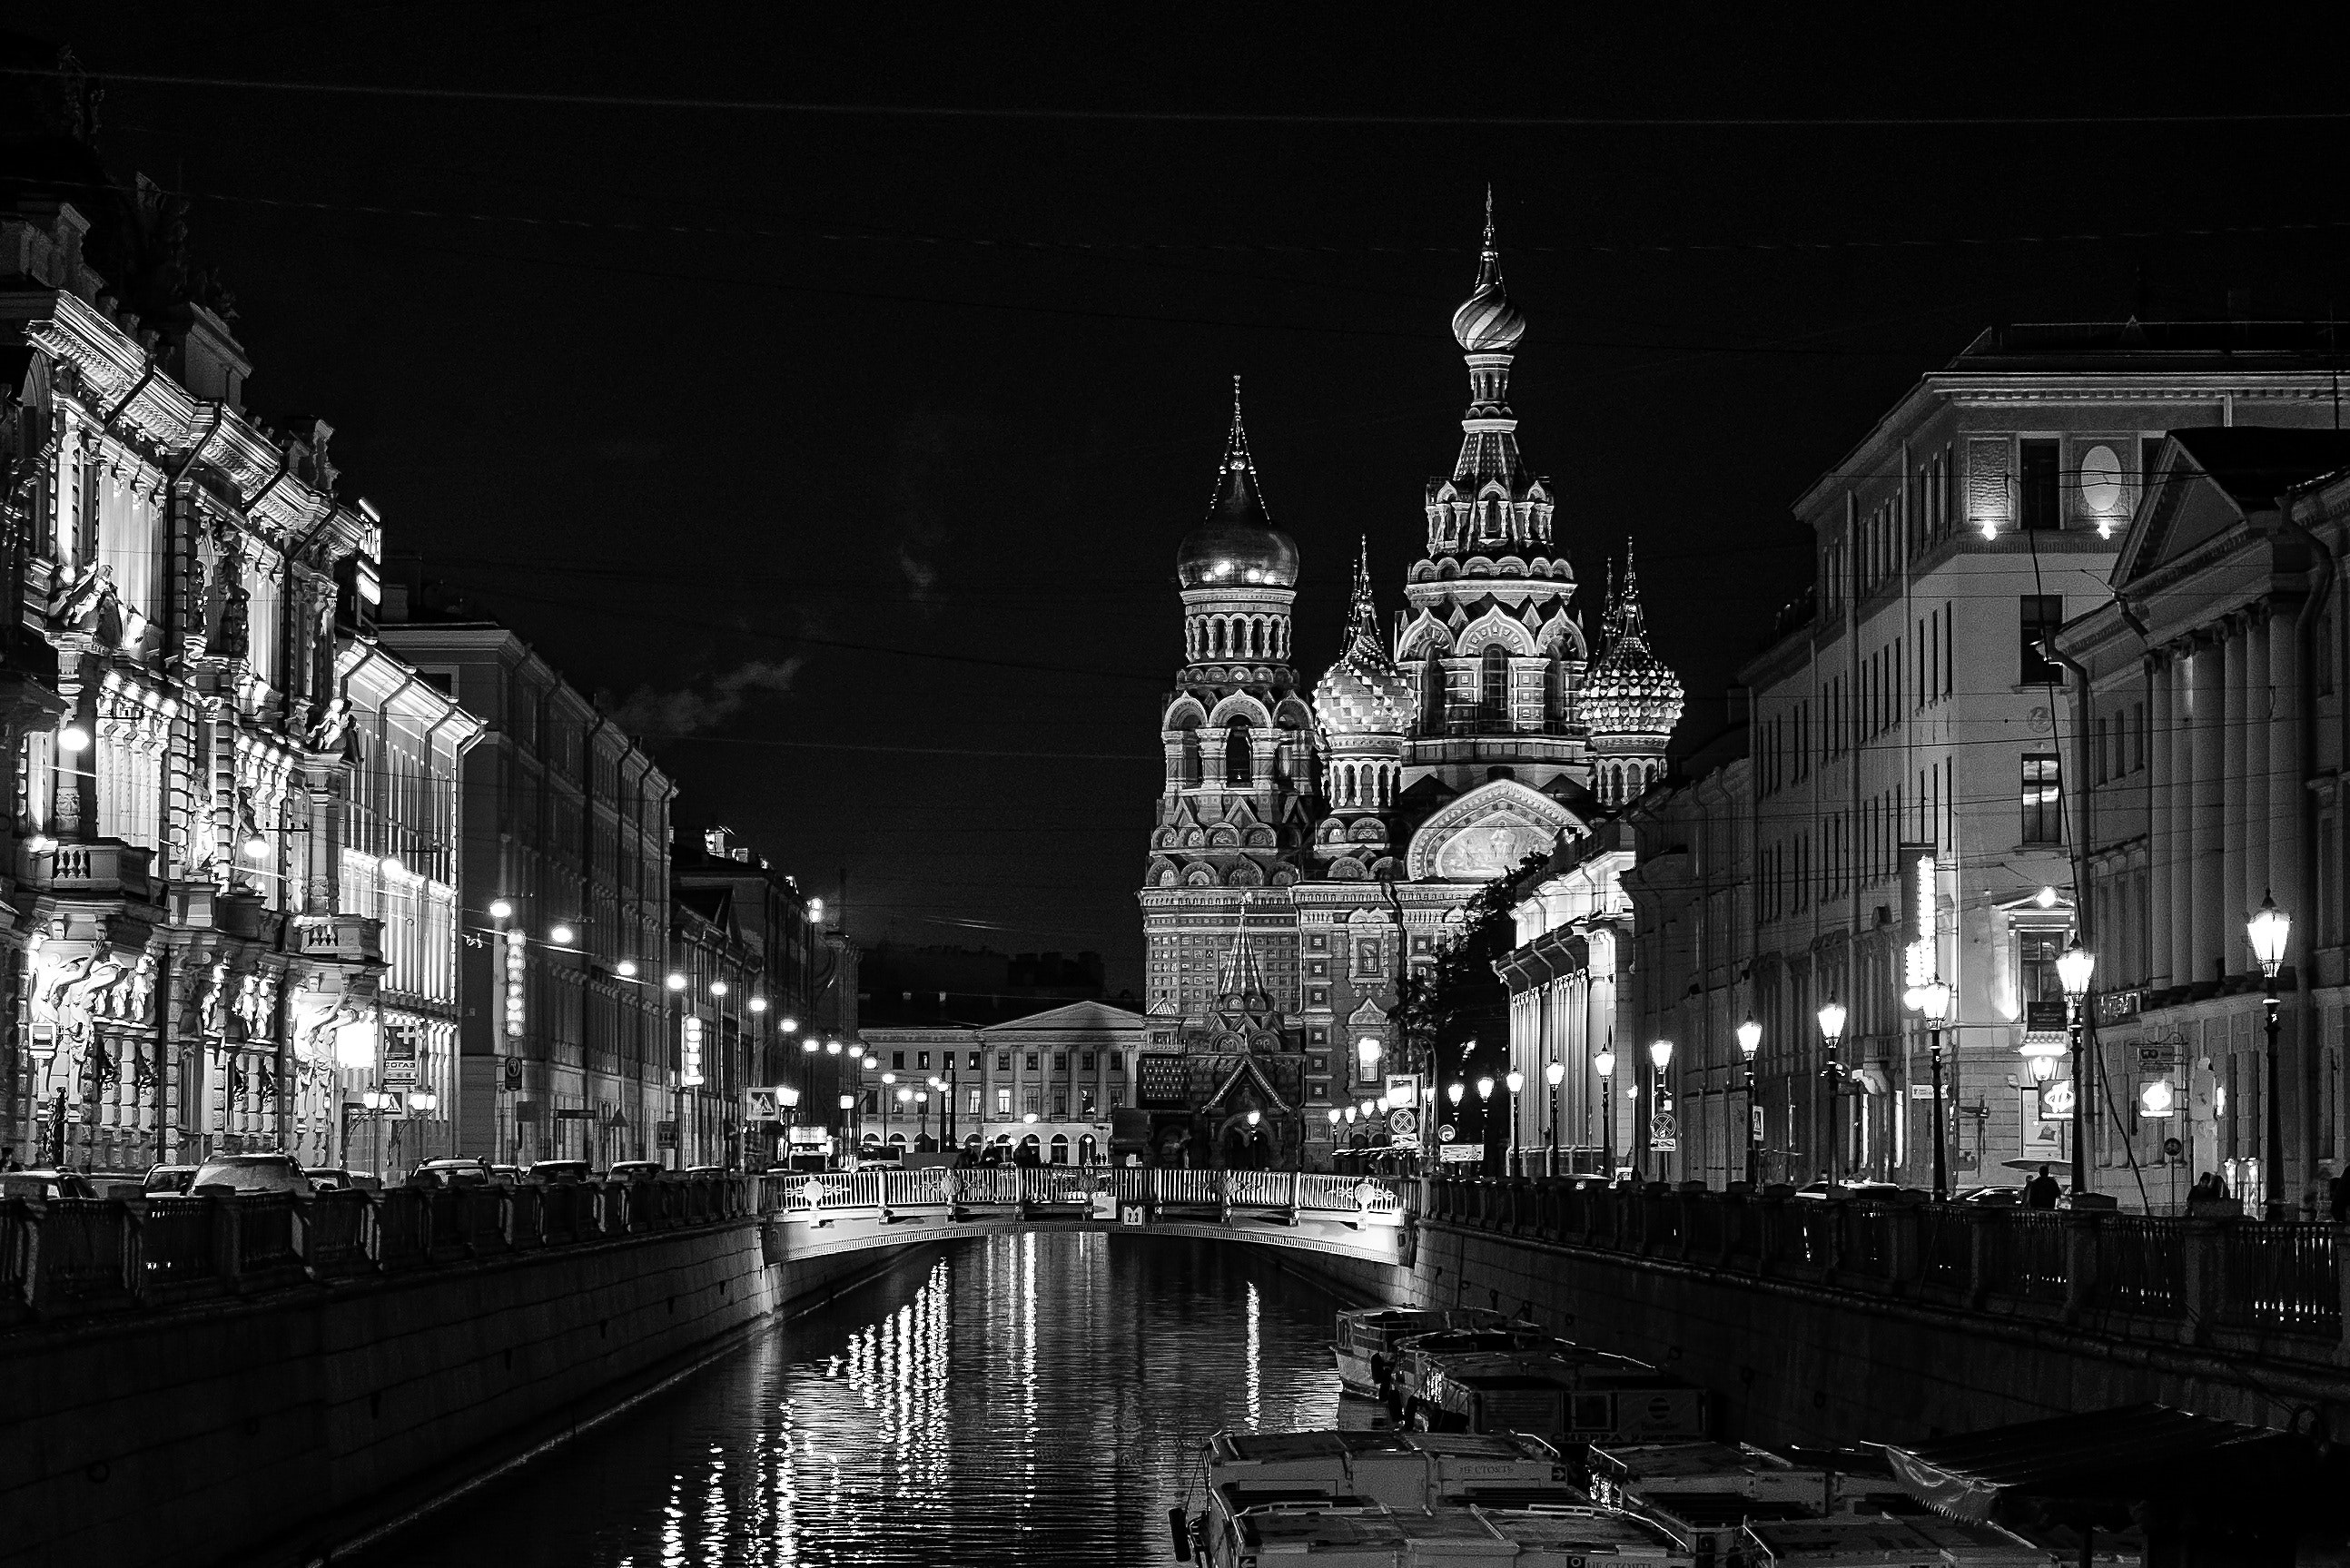 Free stock photo of black and white buildings city similar photos voltagebd Images